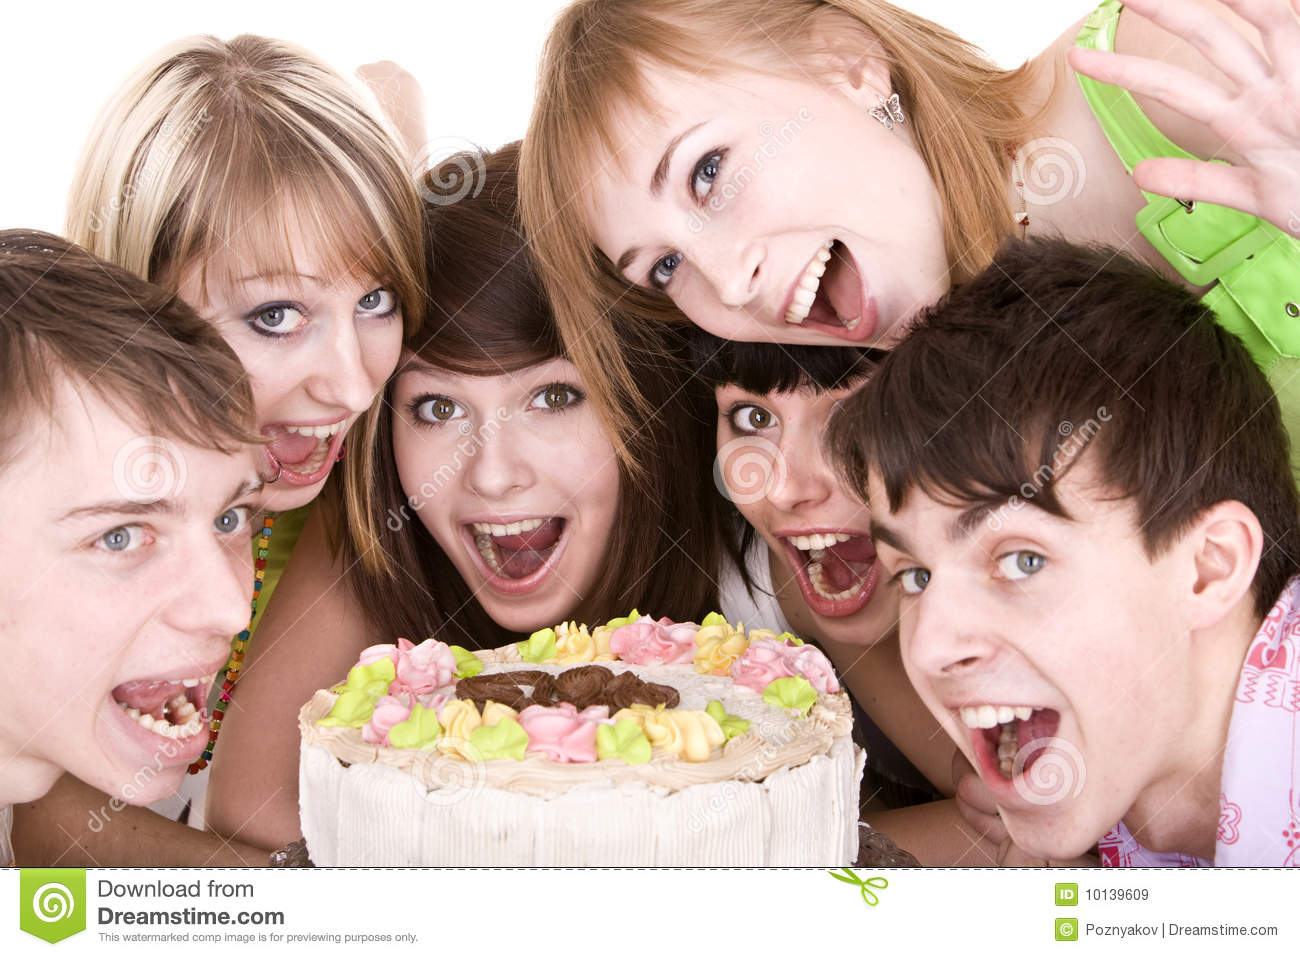 essay on birthday celebrations Ielts writing task 2 sample 1026 - spending a lot on celebrations is just a   parties, birthday parties and other celebrations is just a waste of money  this  essay examines both views and comes to a rational conclusion.